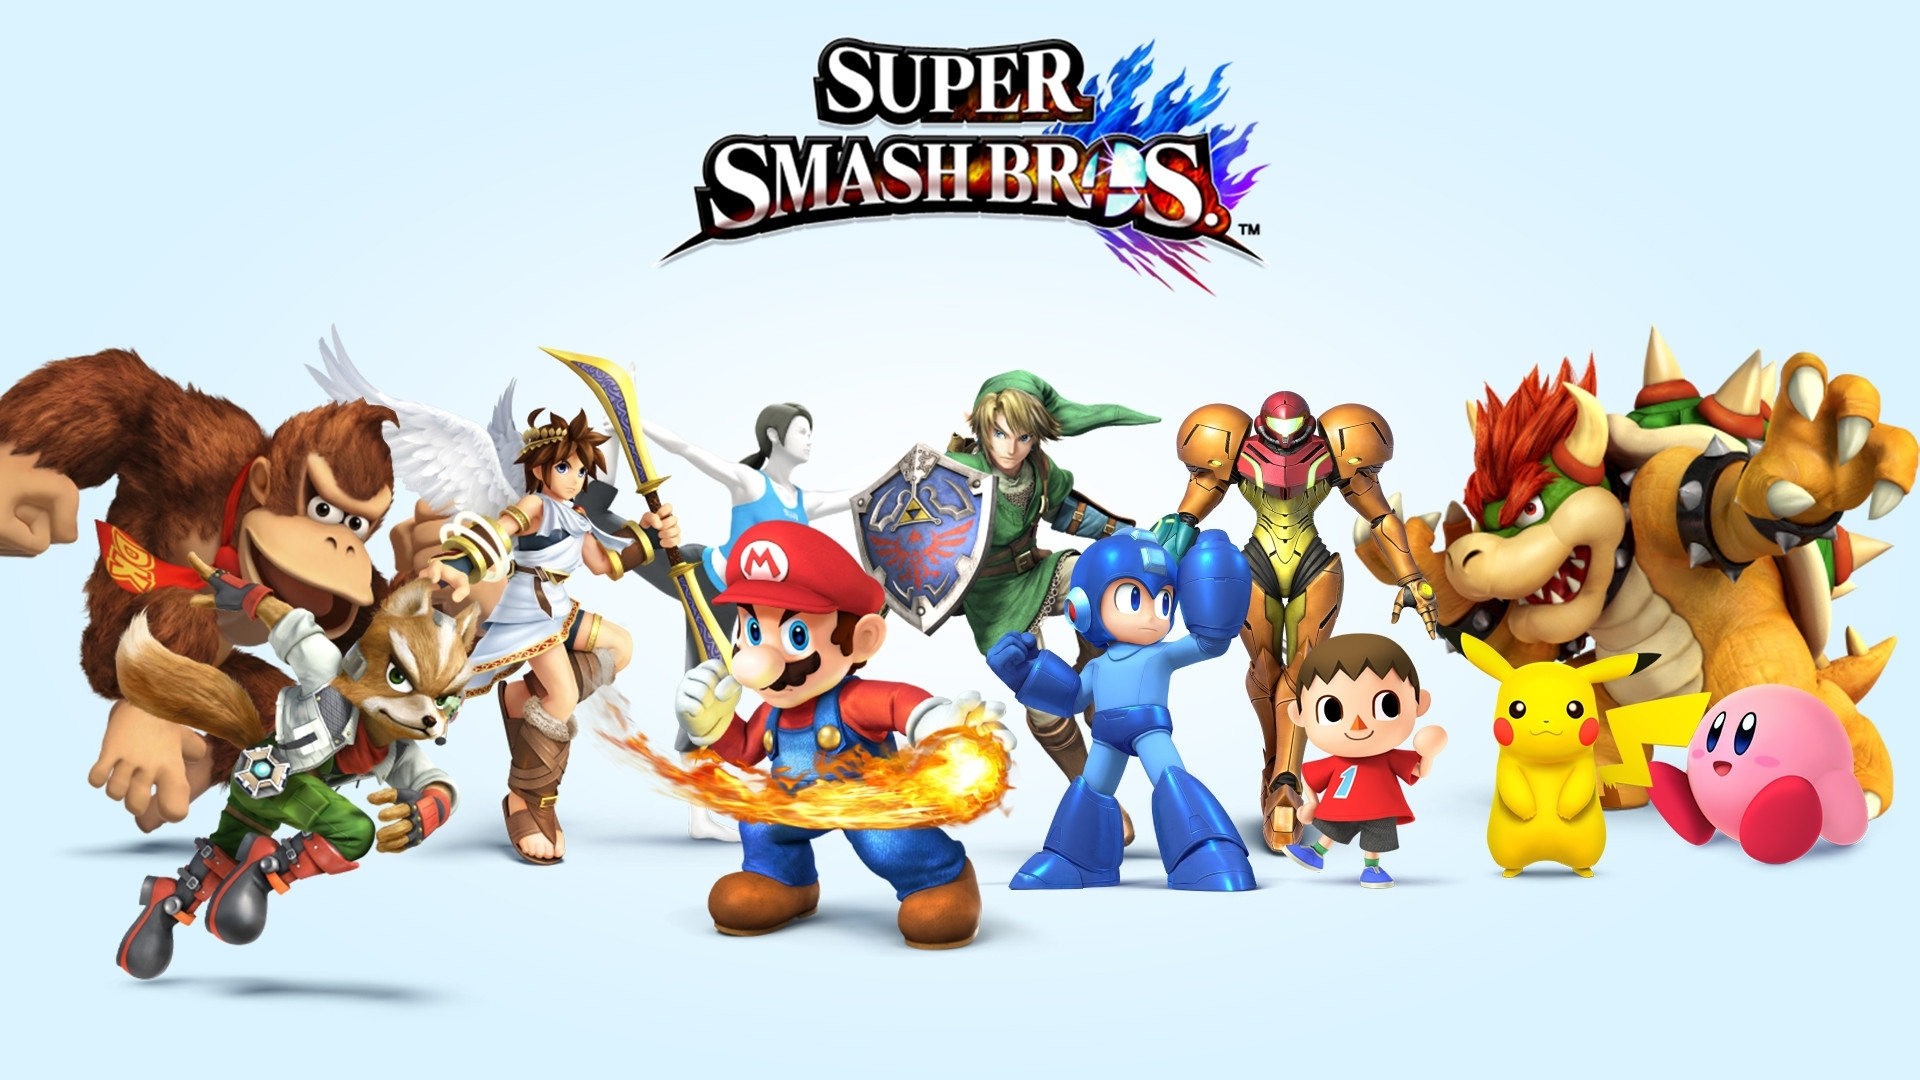 super smash brothers wallpaper (75+ images)